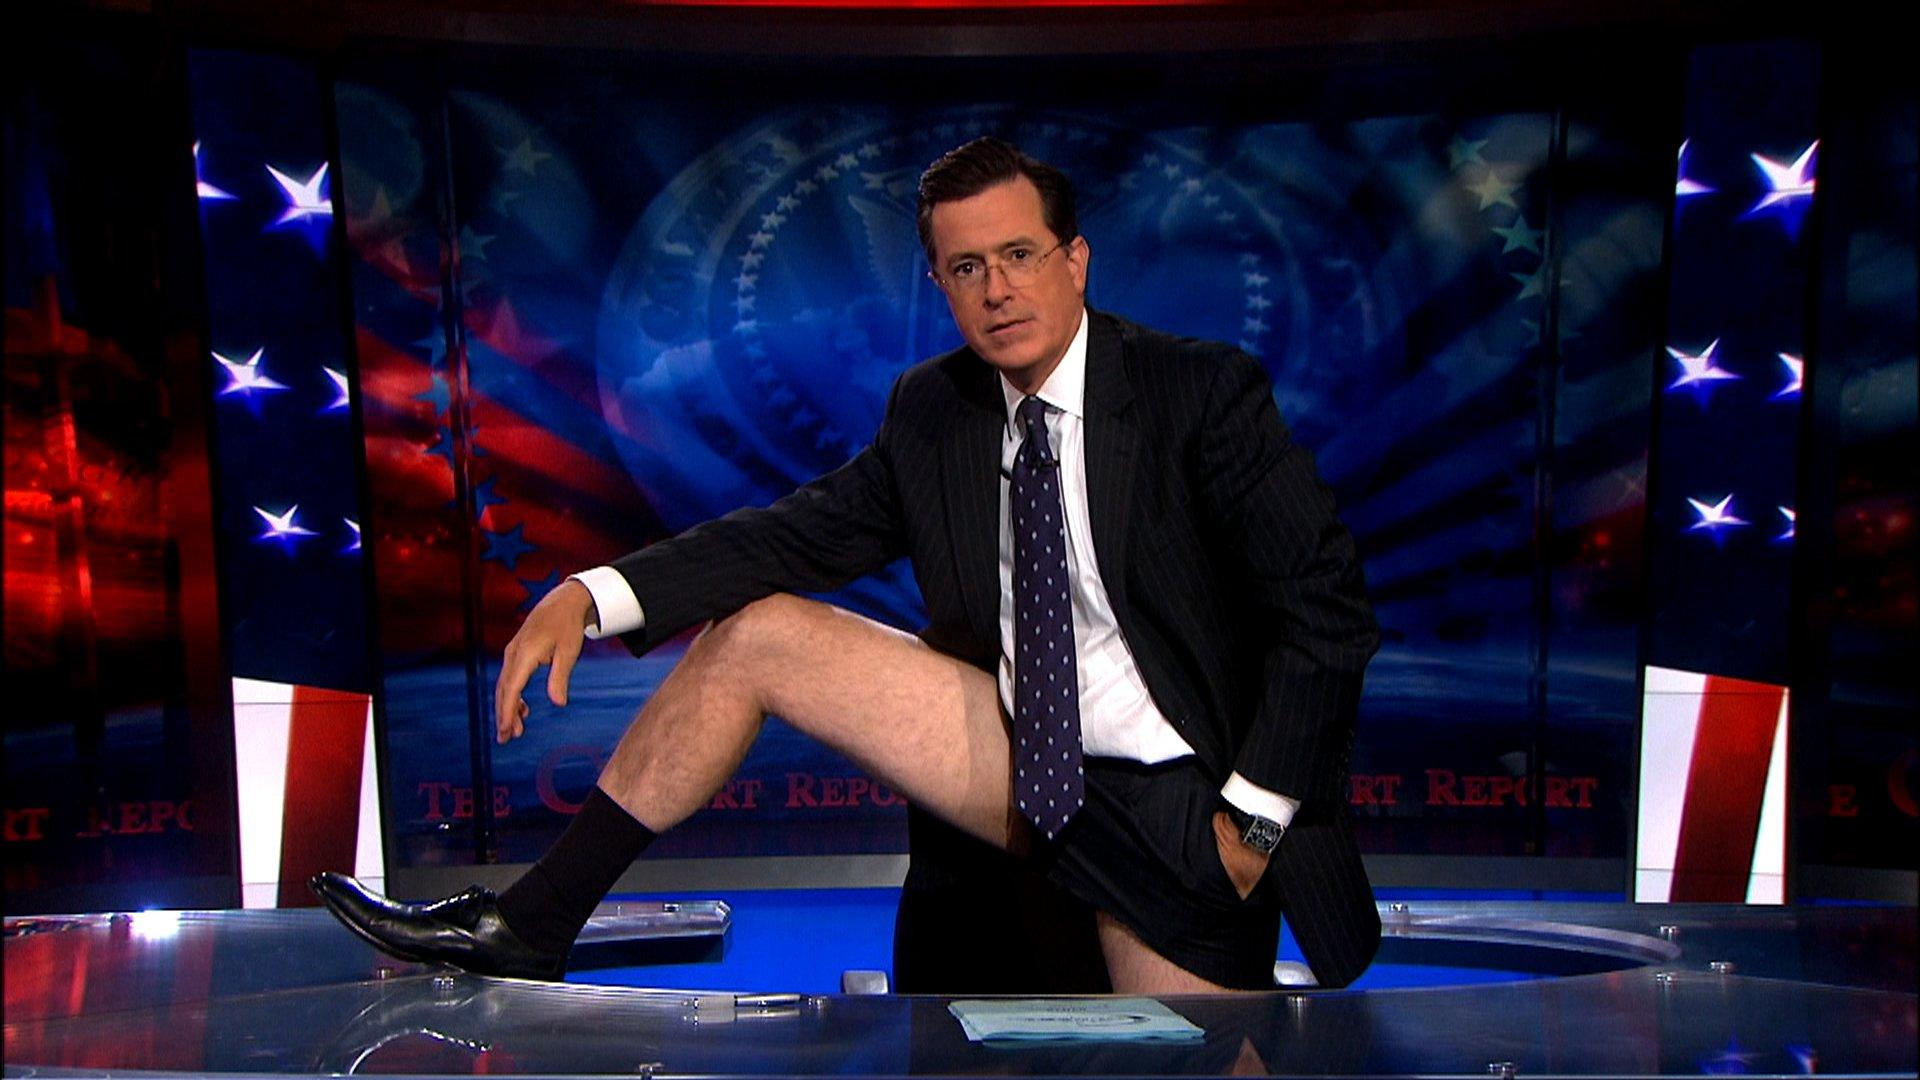 Stephen Colbert Wallpaper 4   1920 X 1080 stmednet 1920x1080